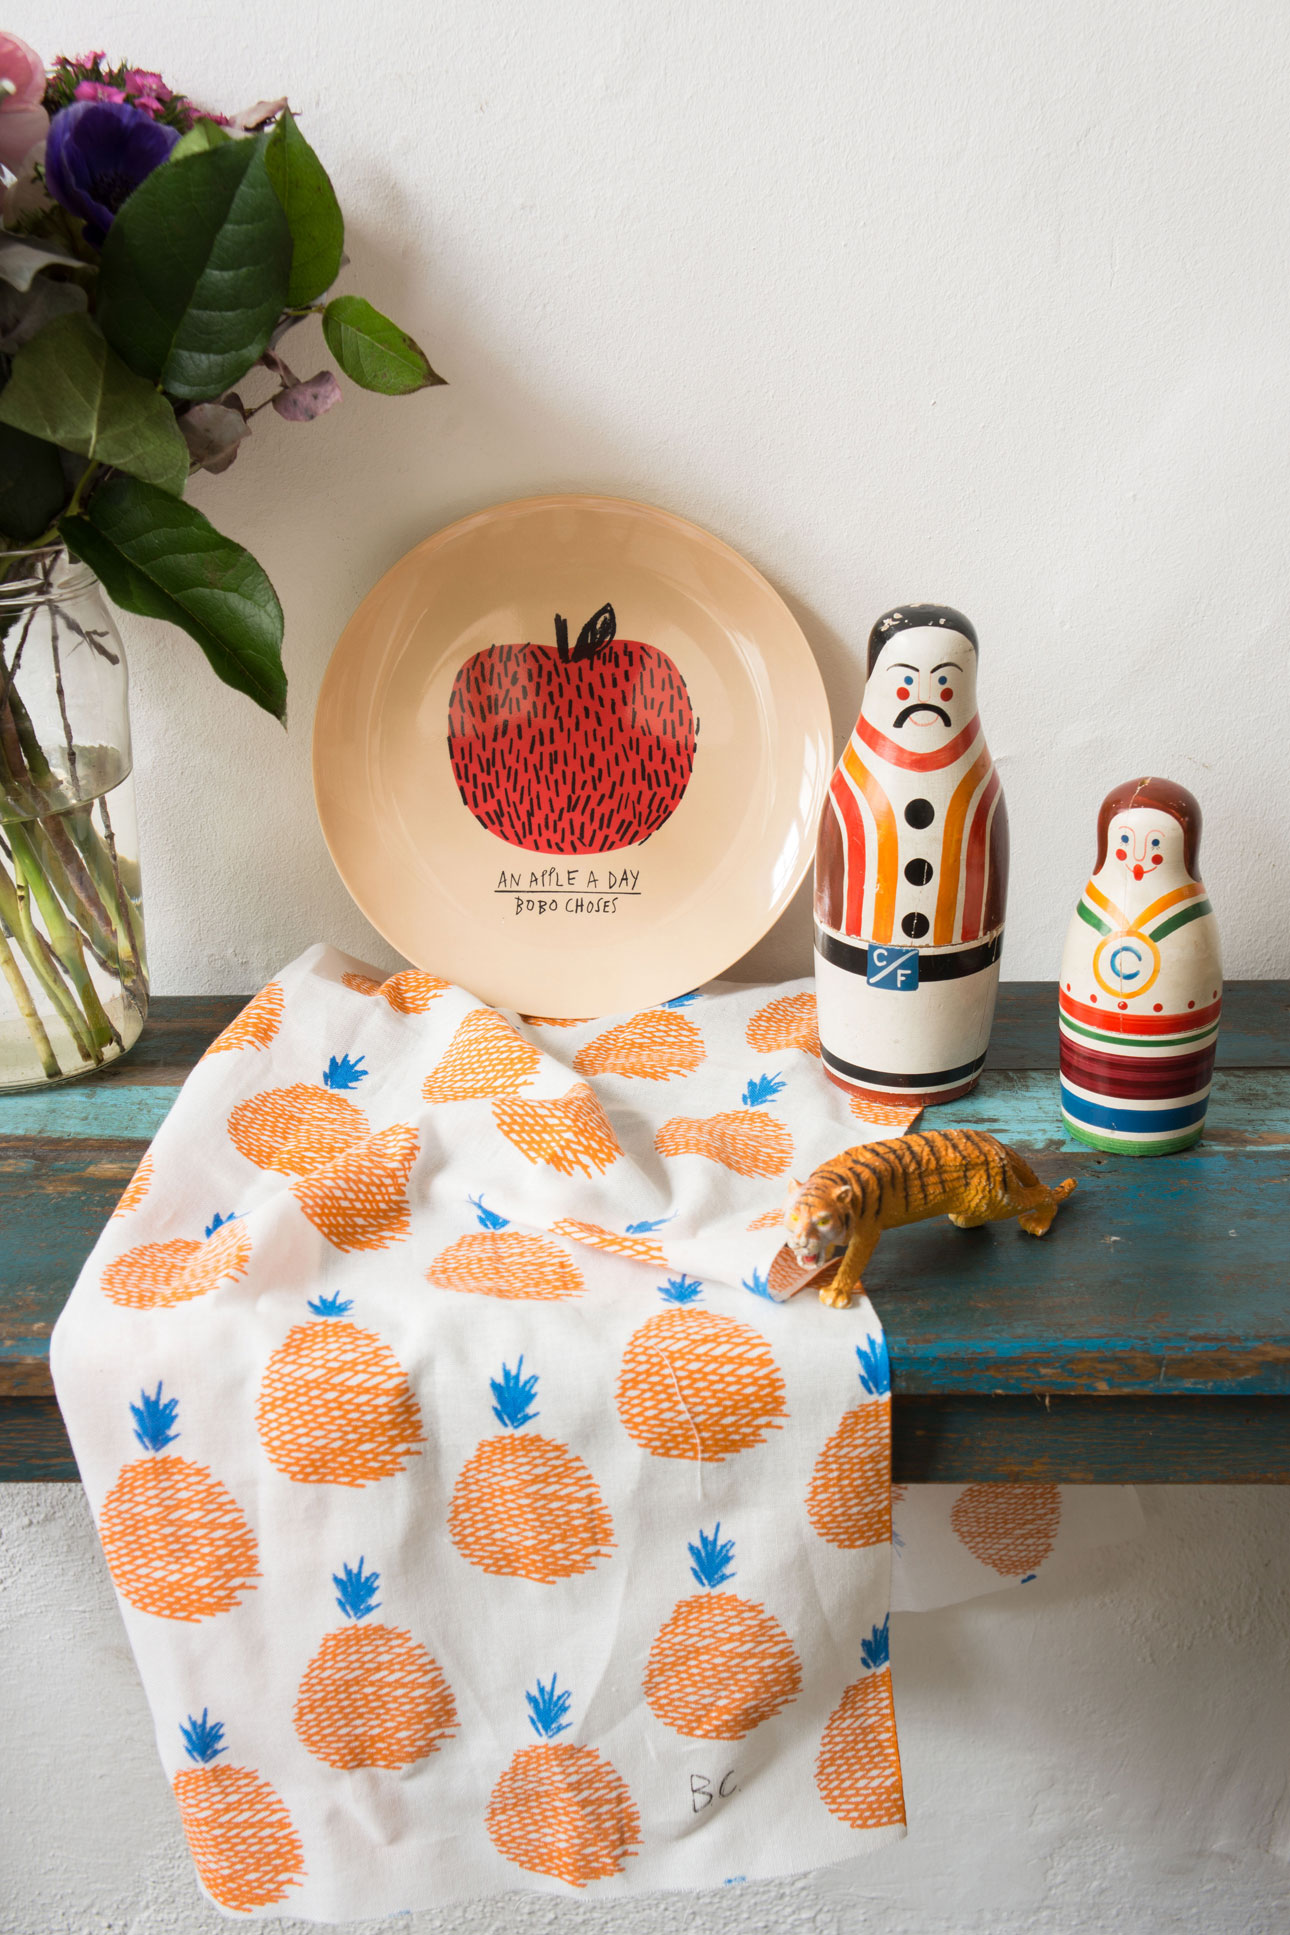 Bobo Choses maison wooncollectie - bord appel, theedoek sinaasappel